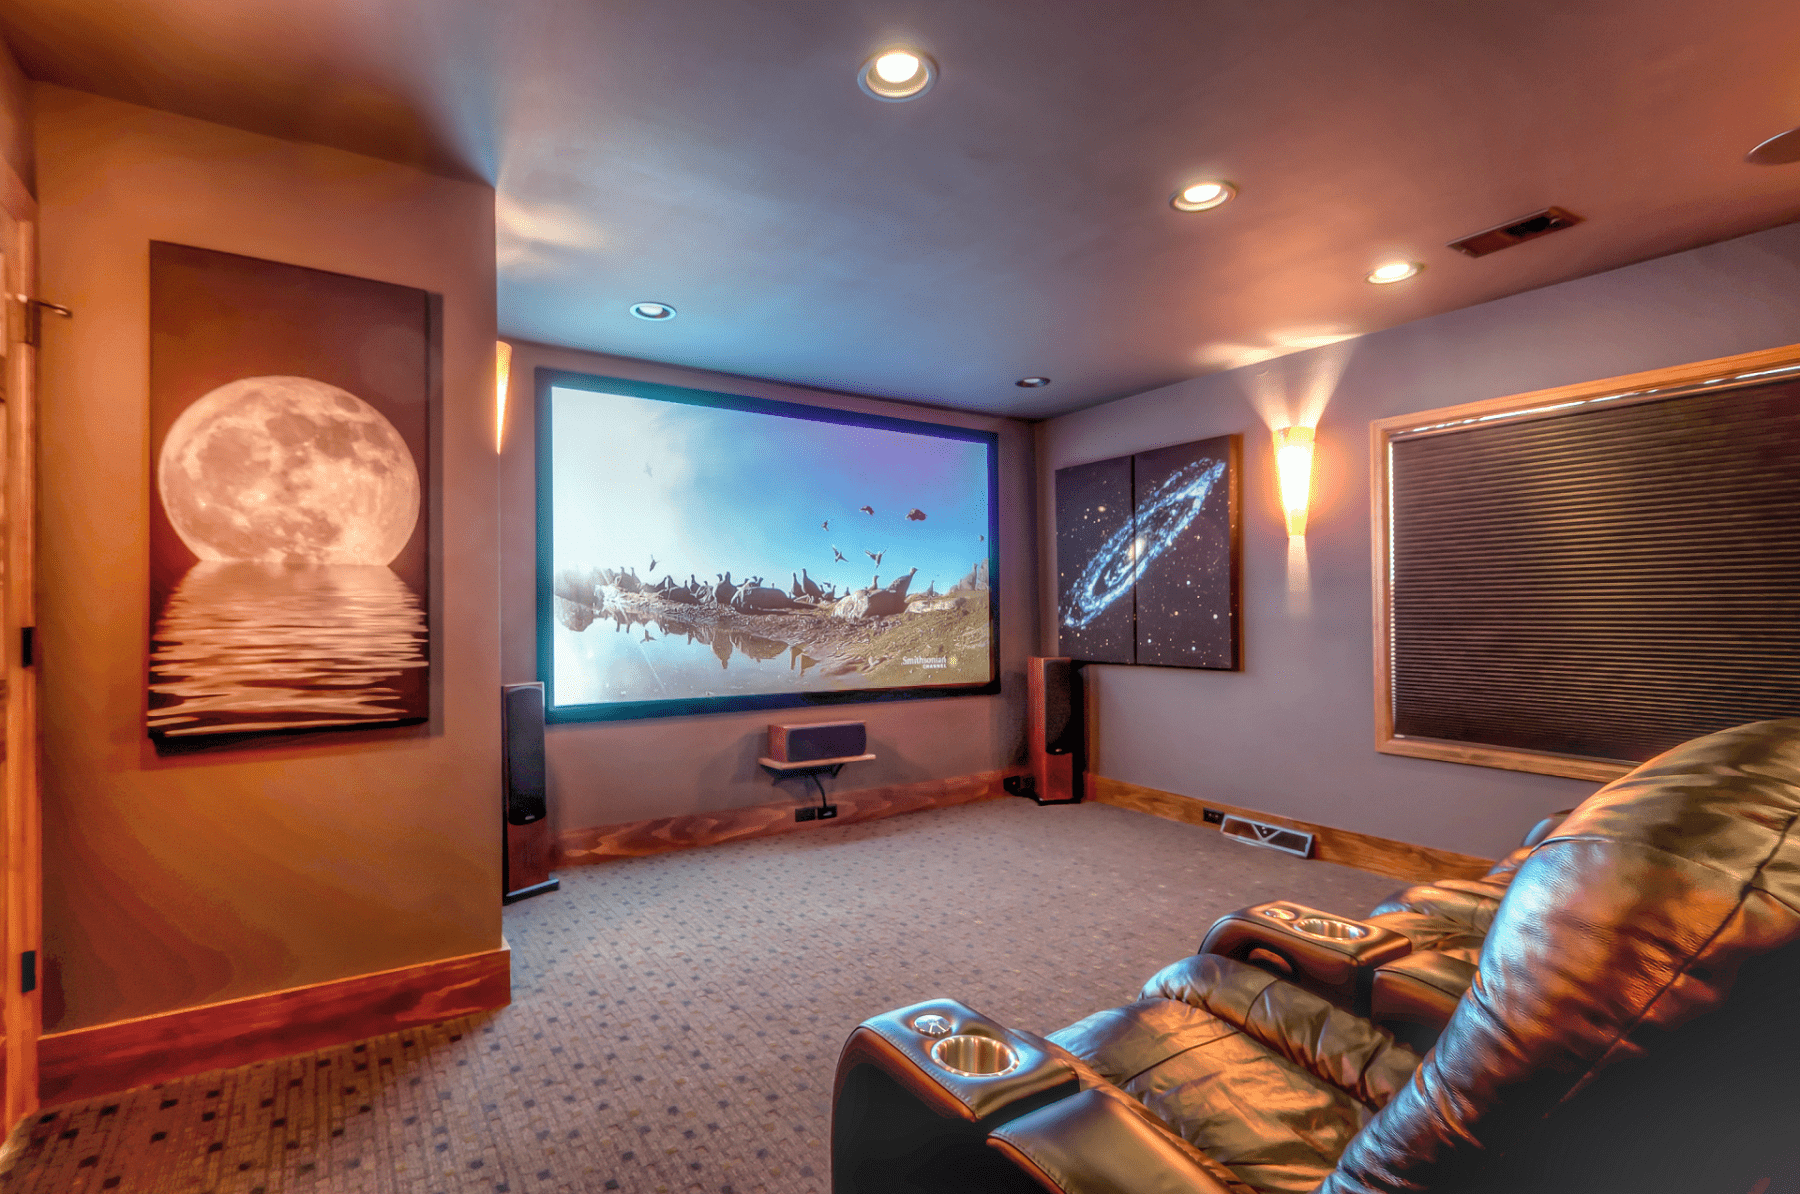 Fox-Point-Entertainment-Room-after-6